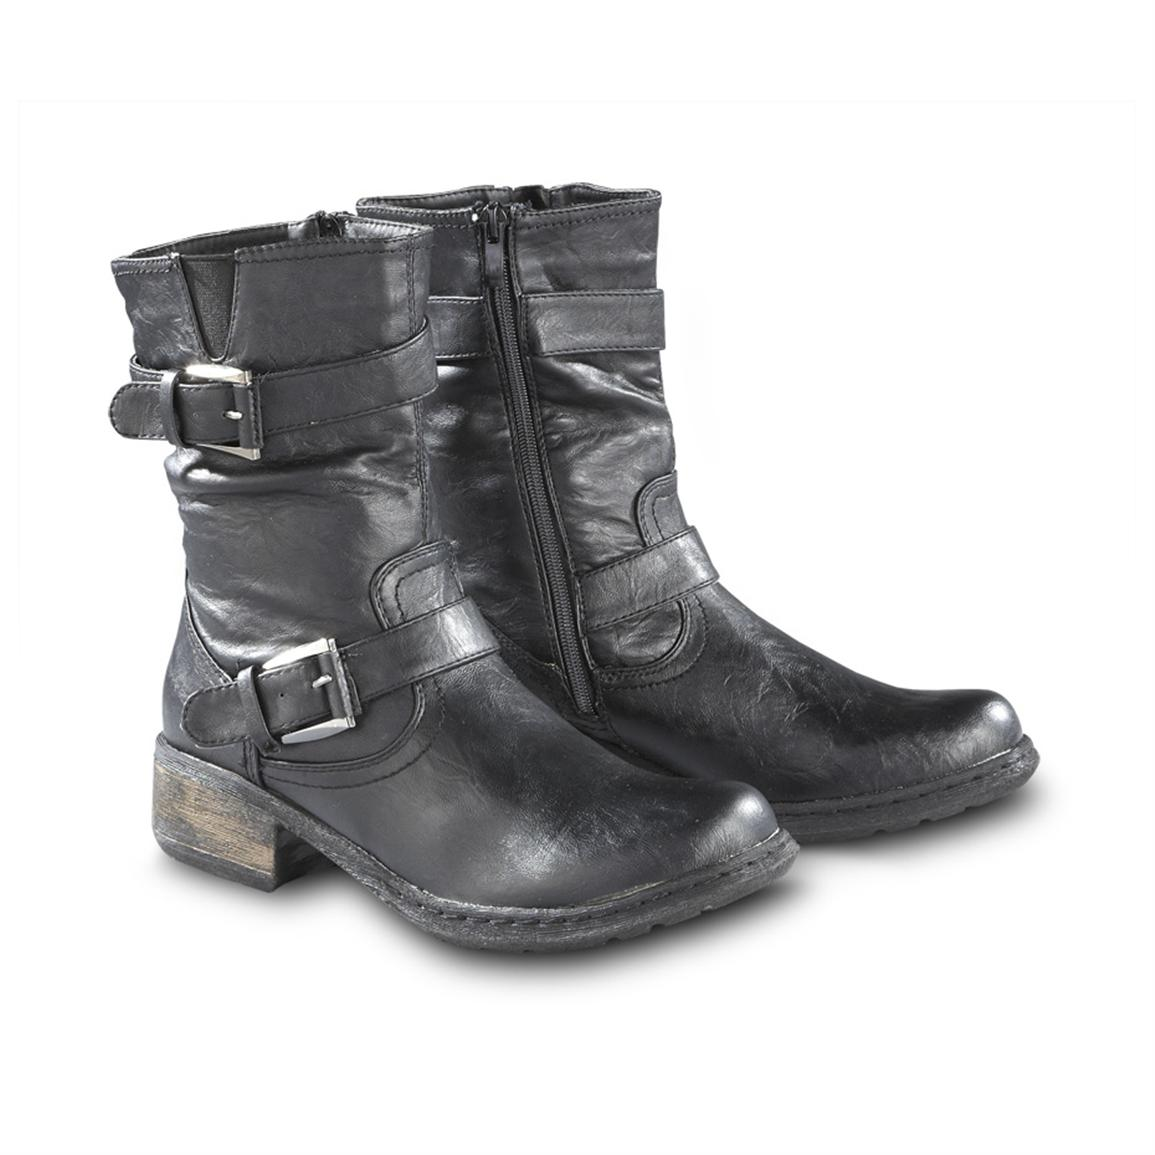 Short Black Boots For Women chohc1q9